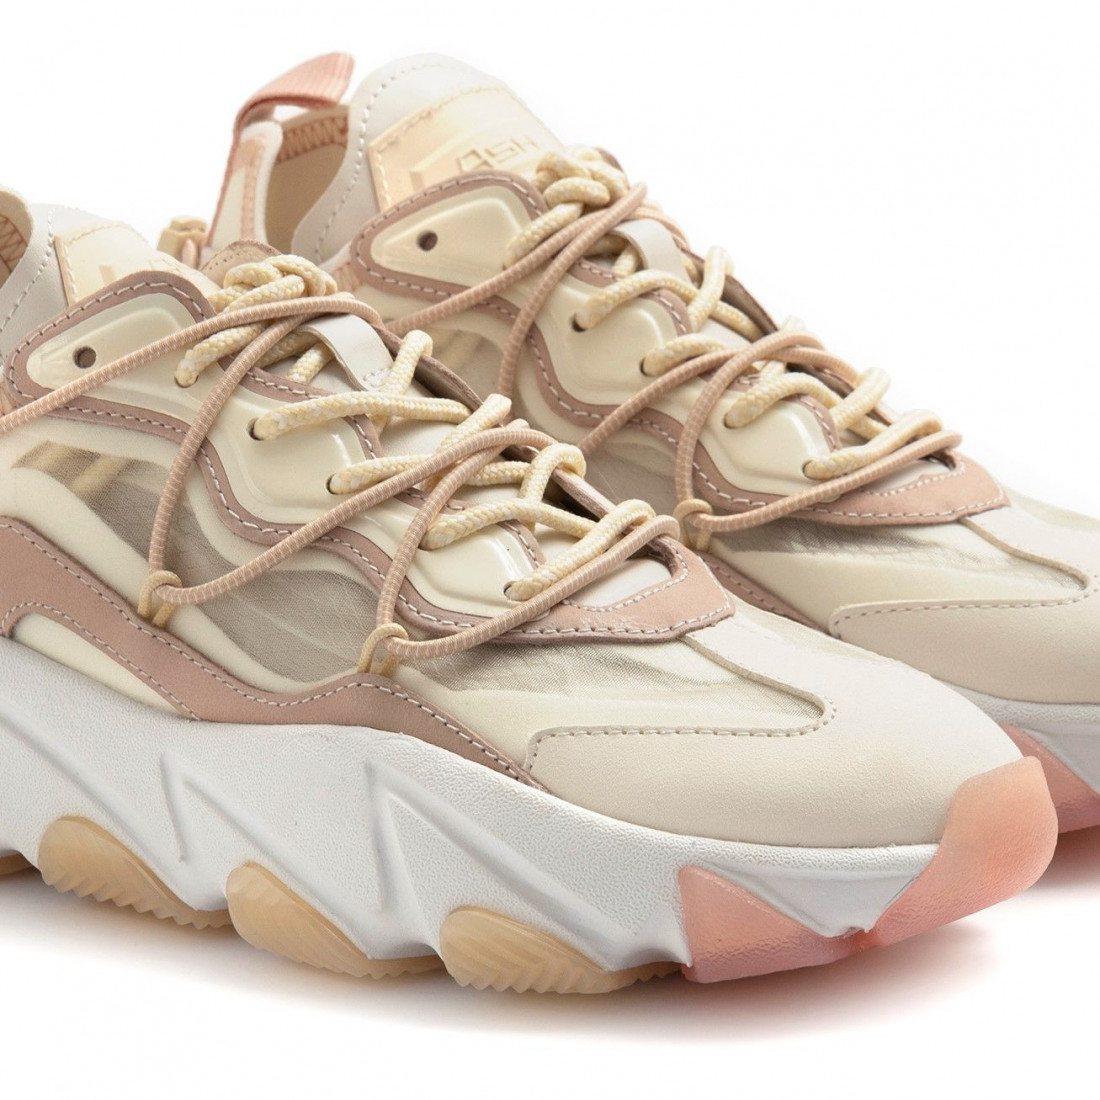 sneakers woman ash extrabis04 8330